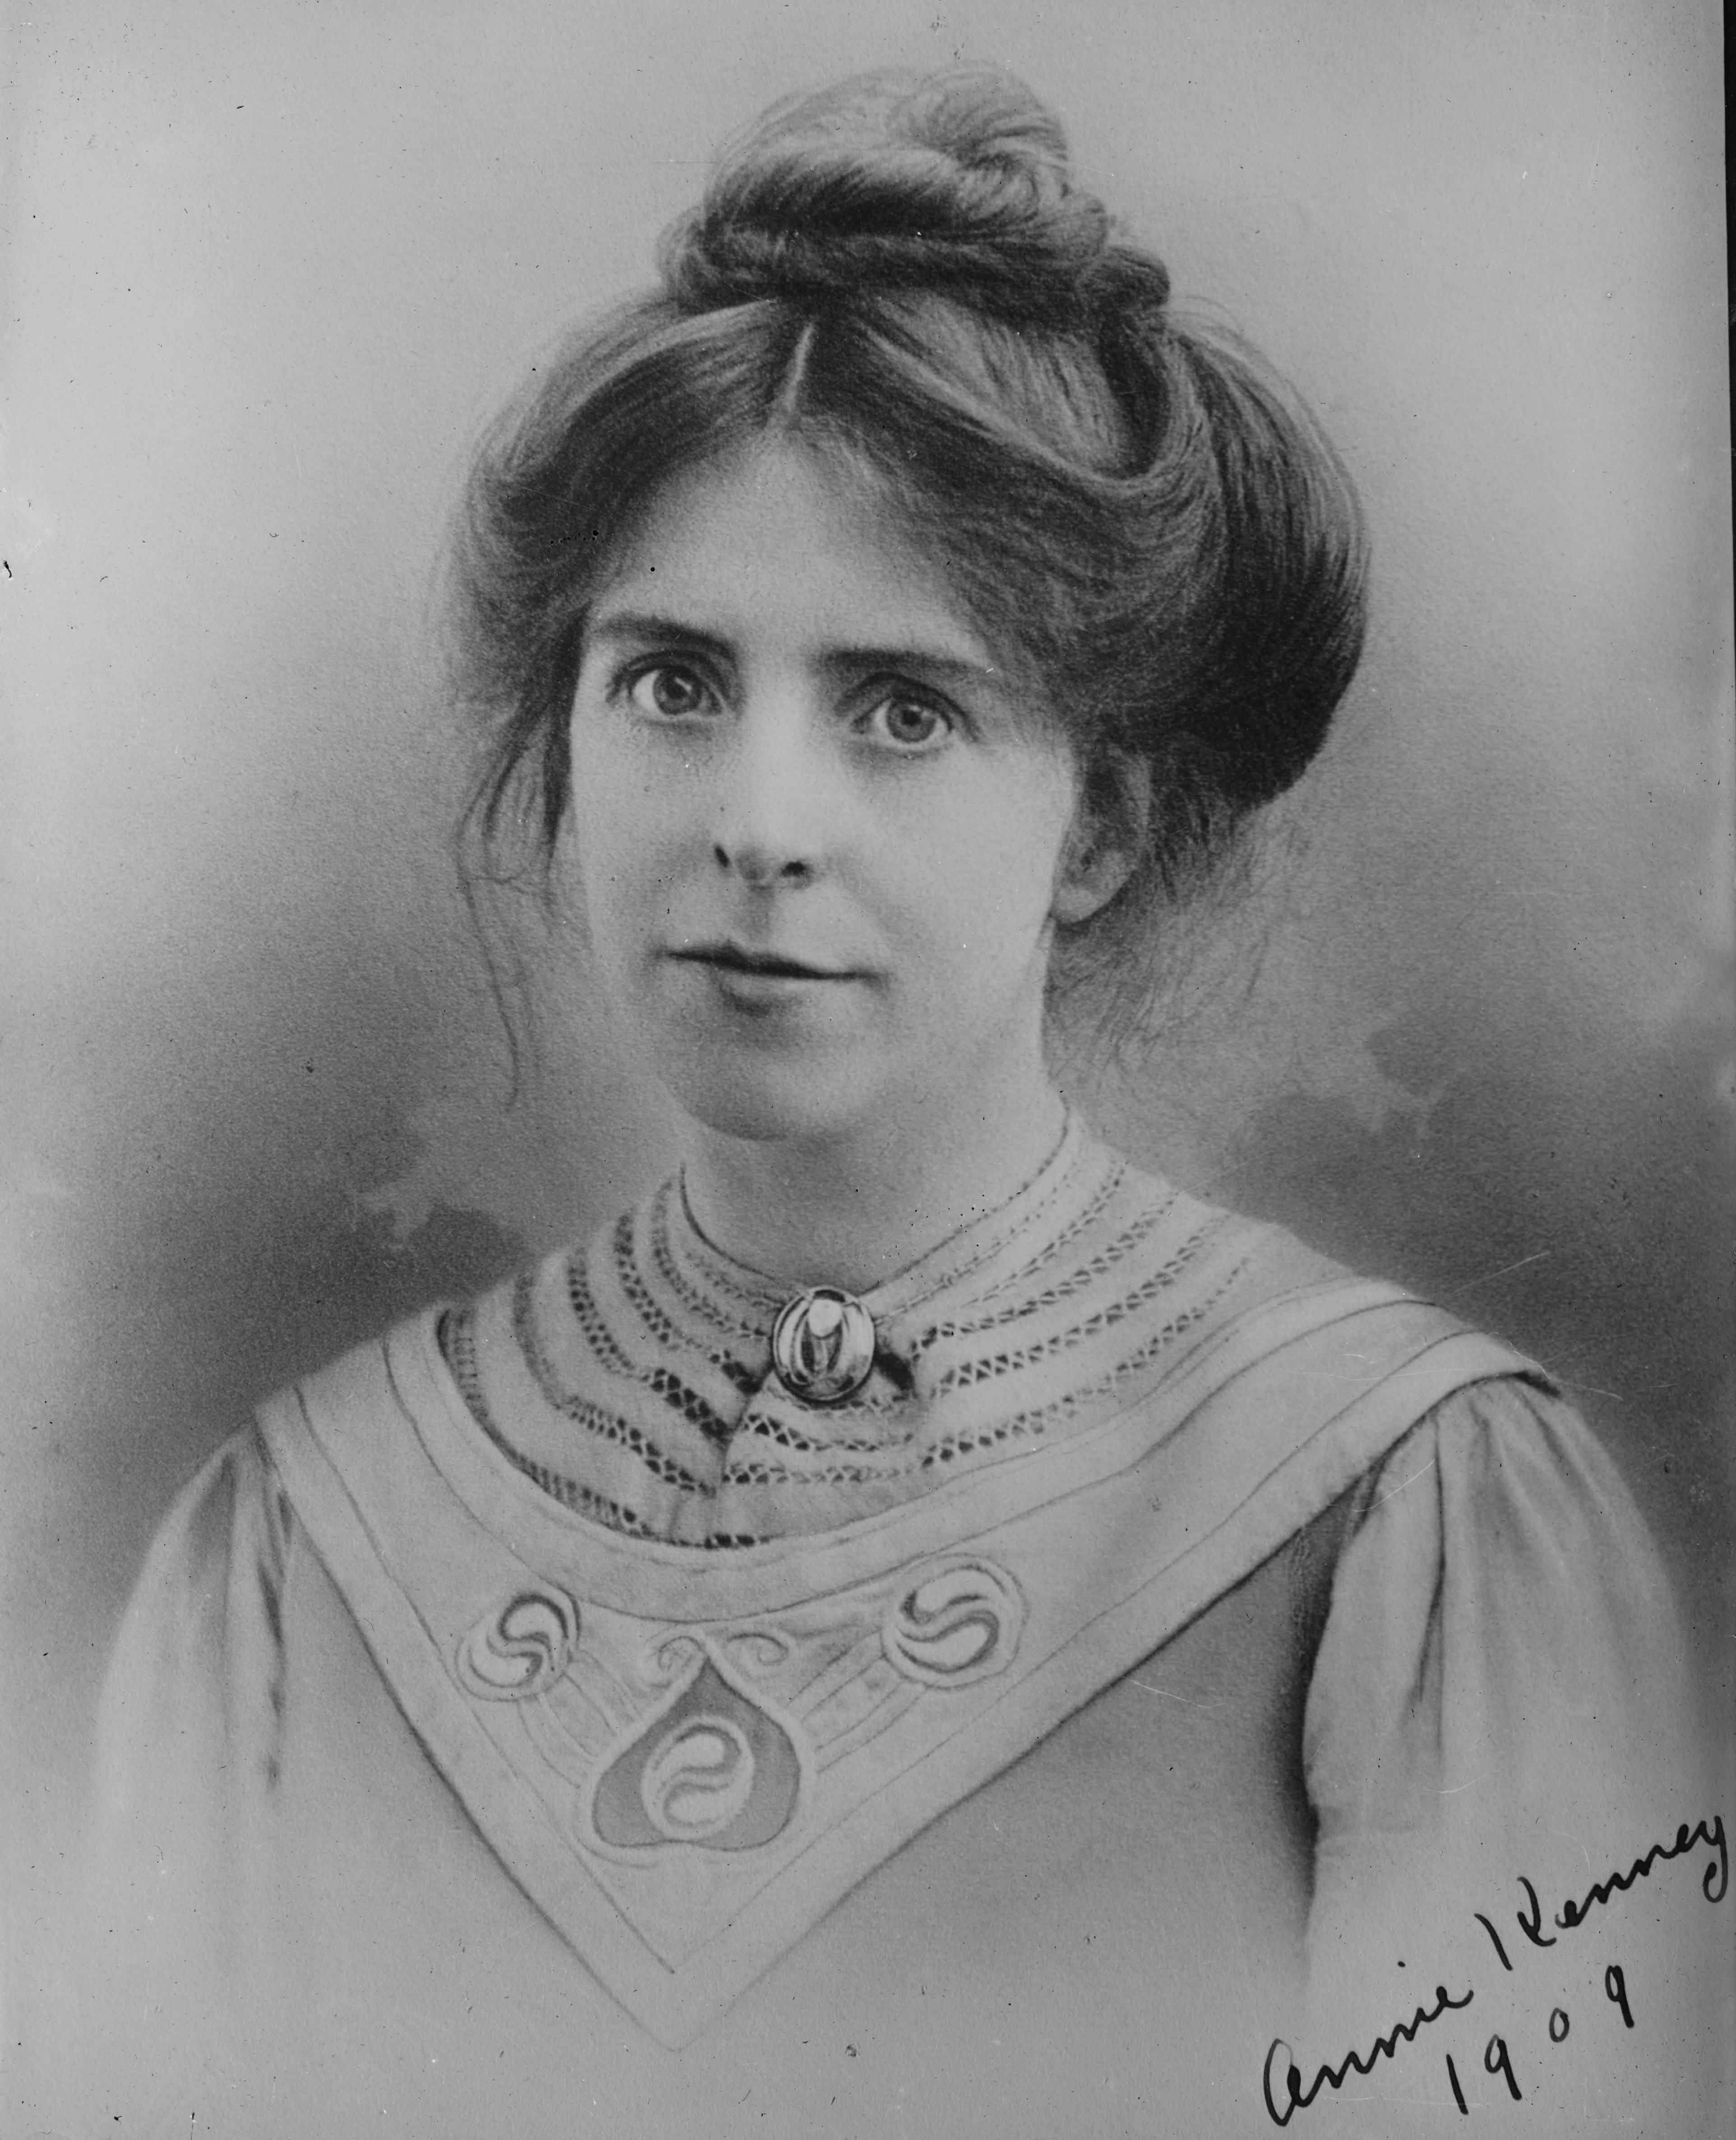 A black and white photograph of Annie Kenney smiling, taken in 1909